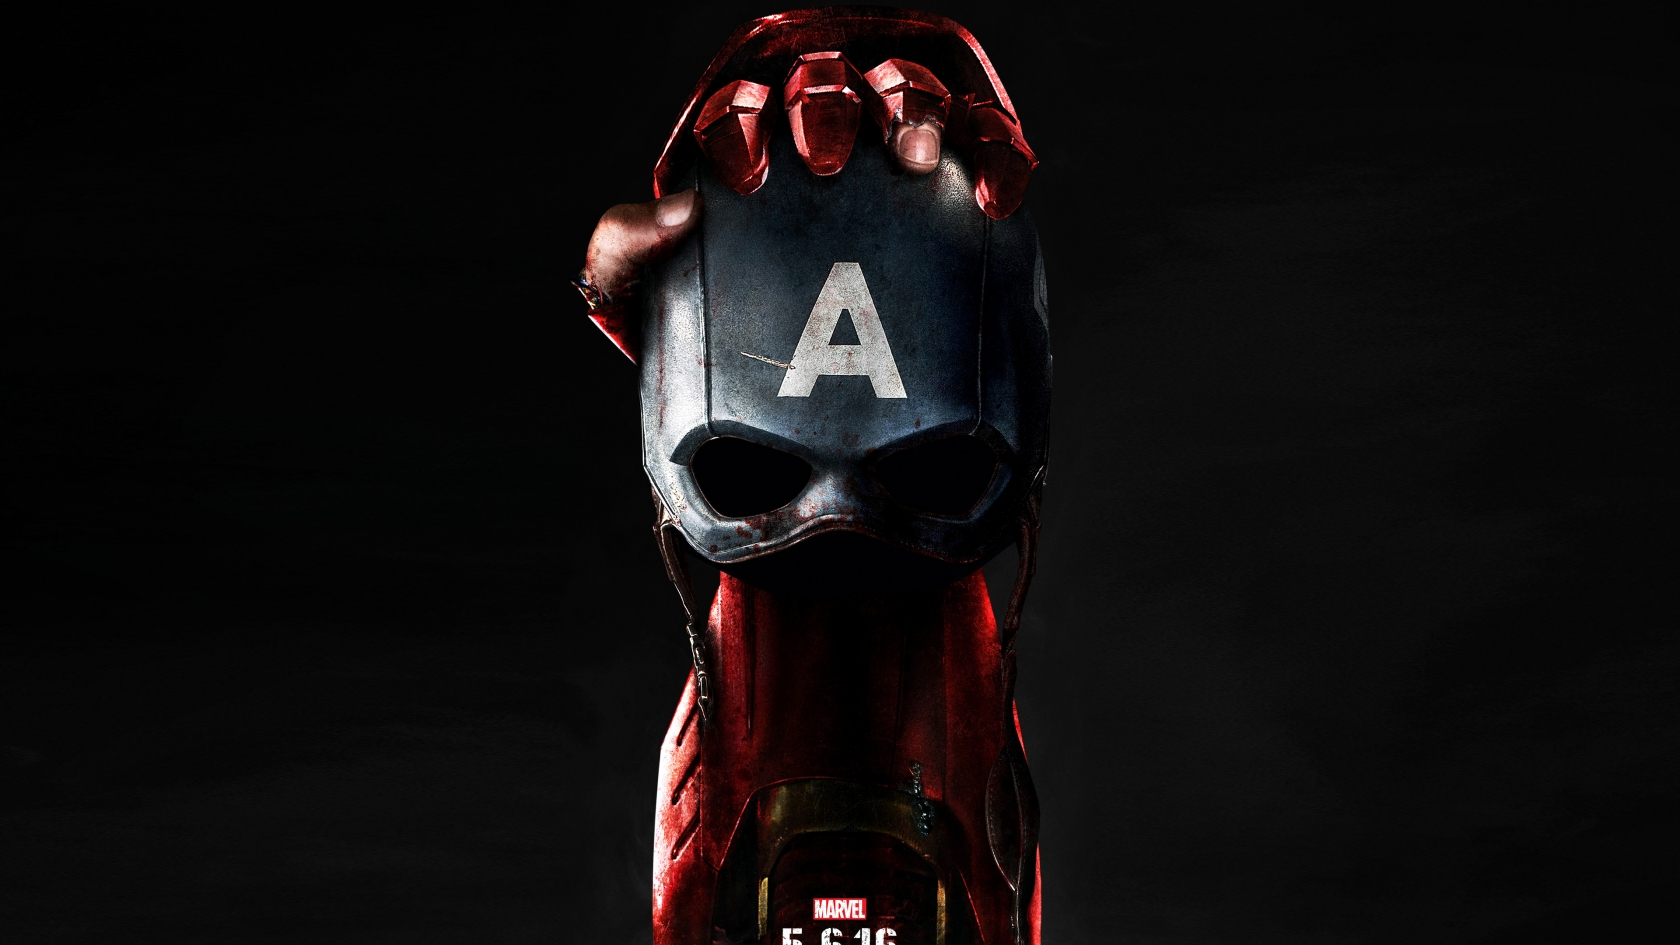 Captain America Civil War Poster 2016 for 1680 x 945 HDTV resolution